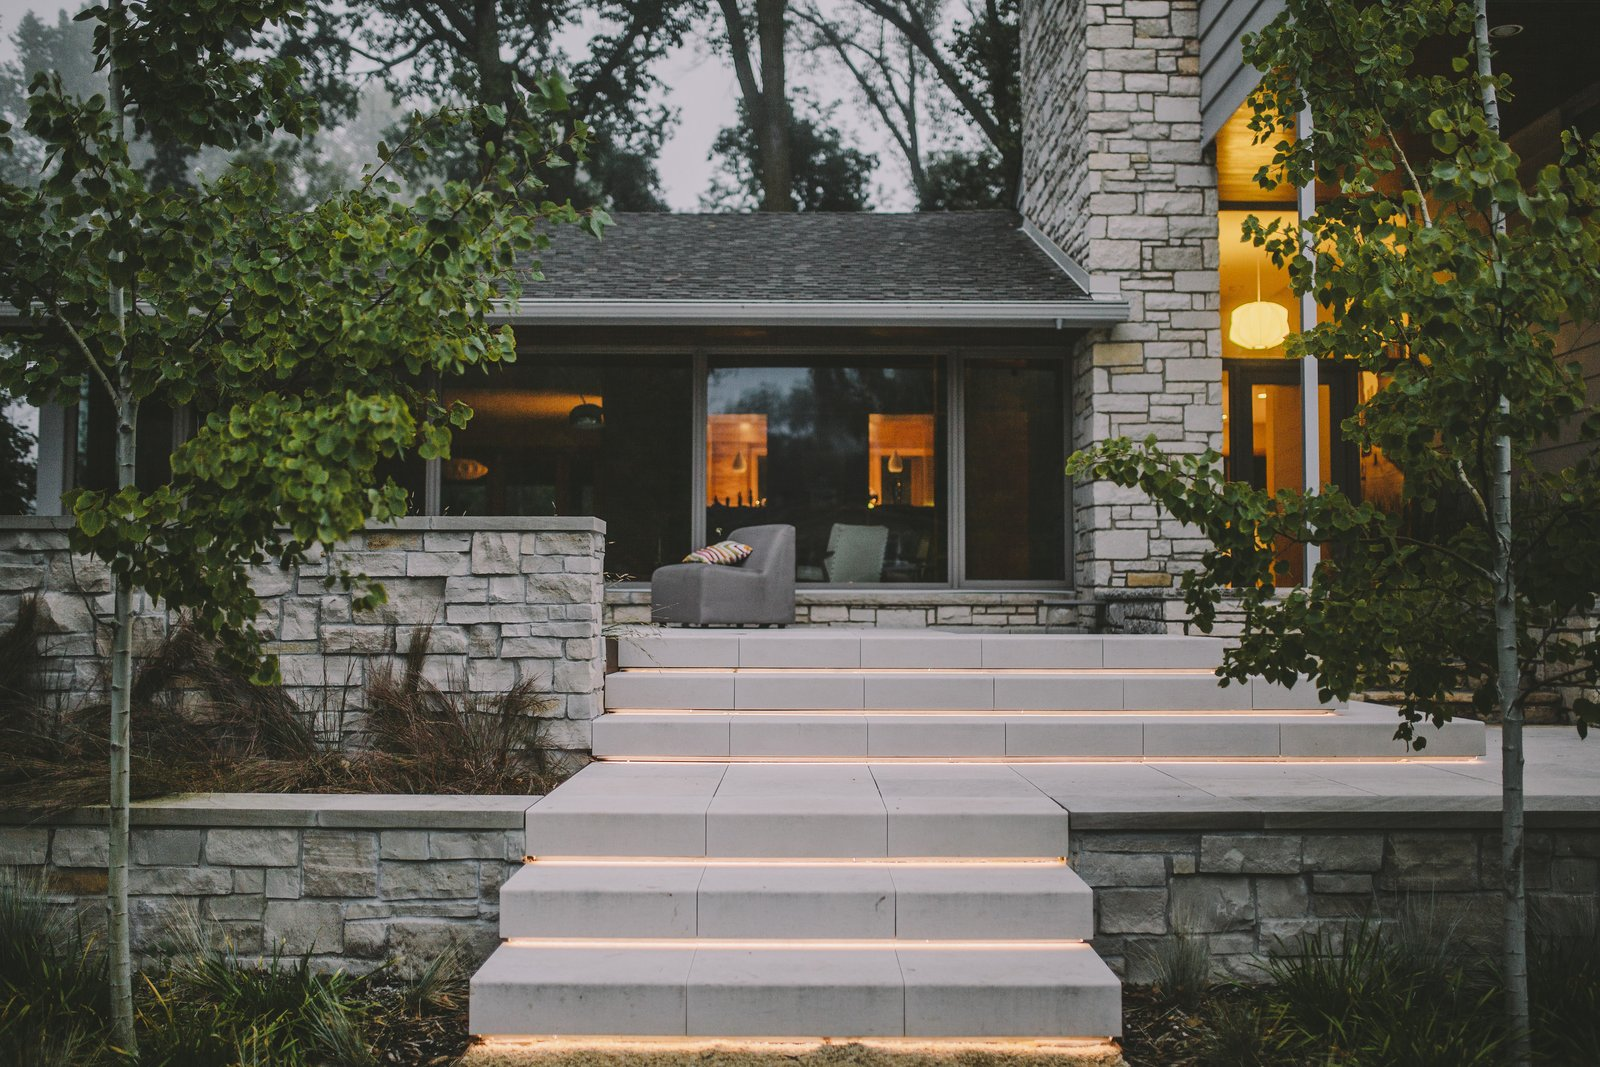 Seemless transition between indoor and outdoor spaces